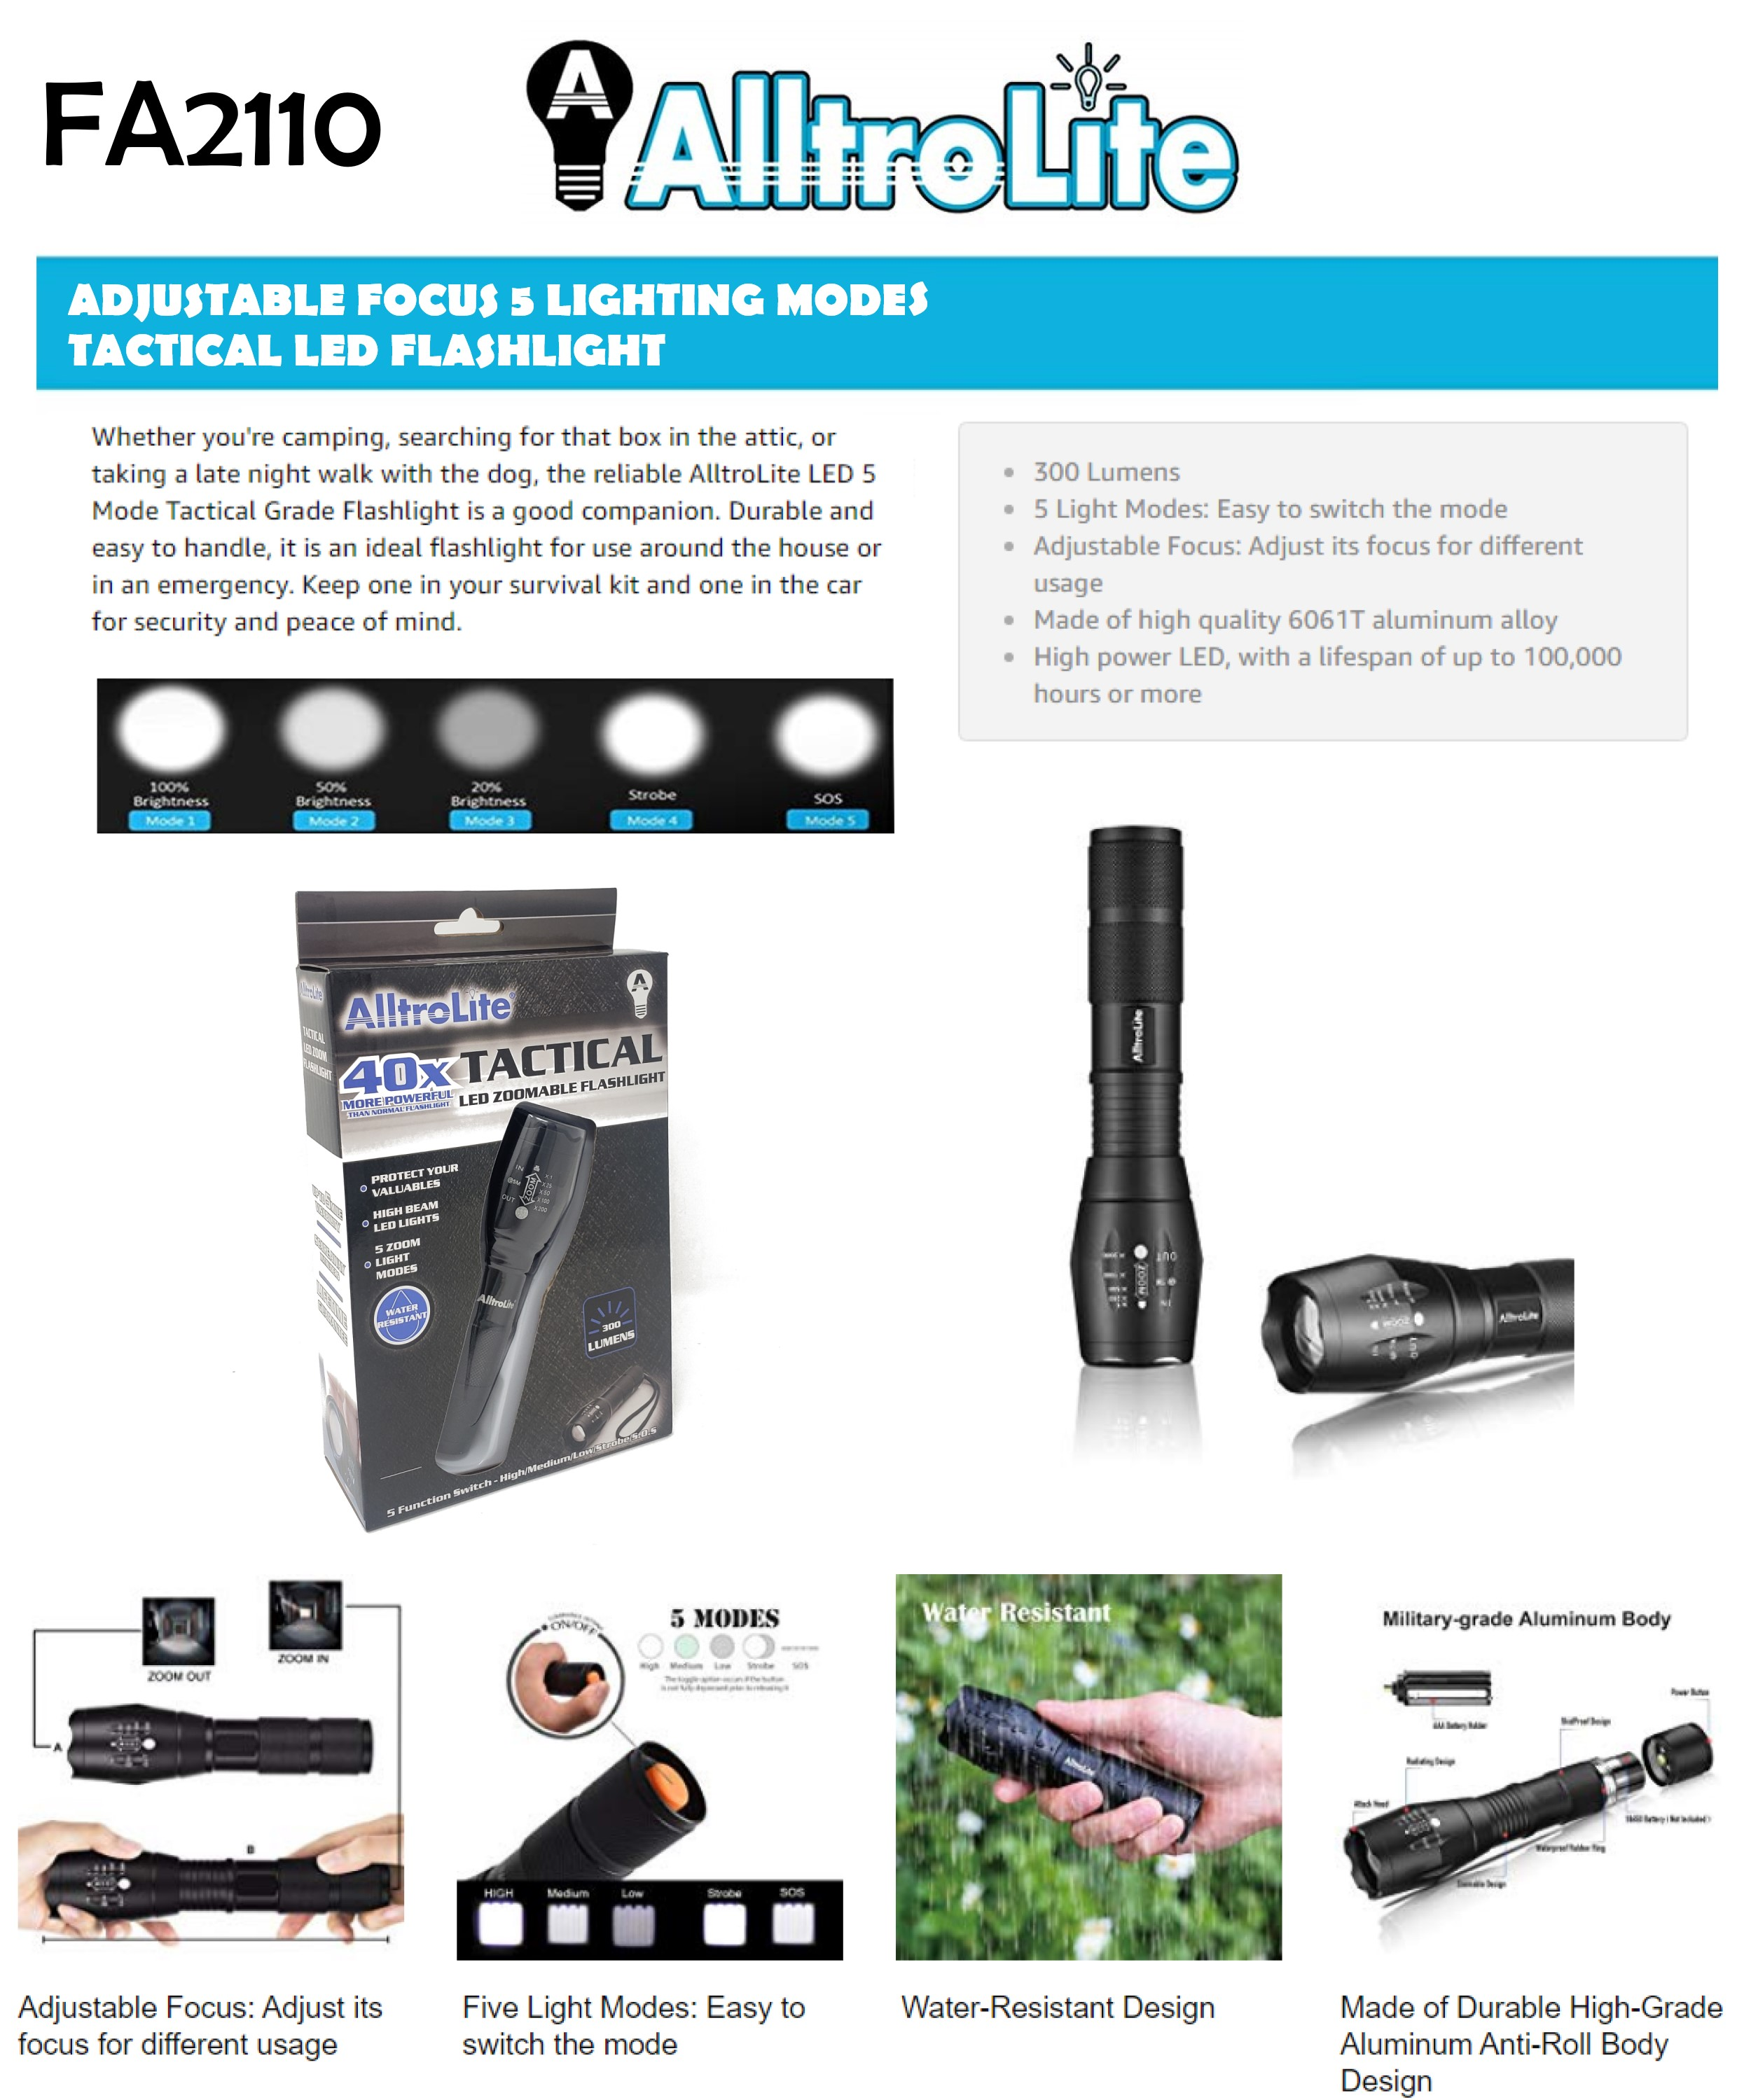 5 Mode Tactical 40X Flashlight (FA2110)